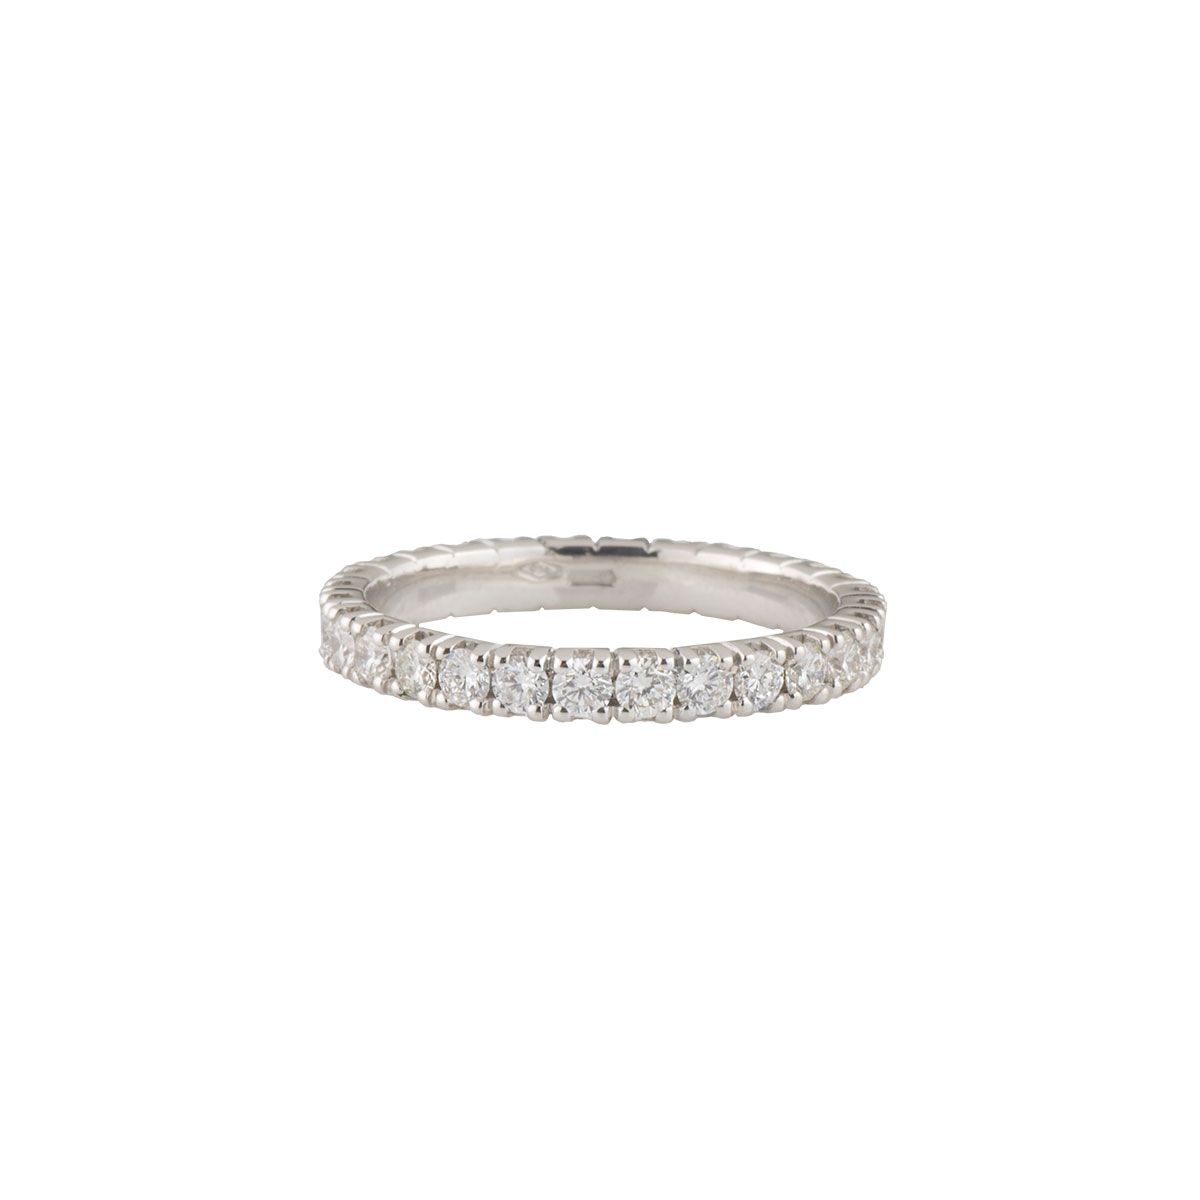 White Gold Diamond Ring 1.15ct G/VS